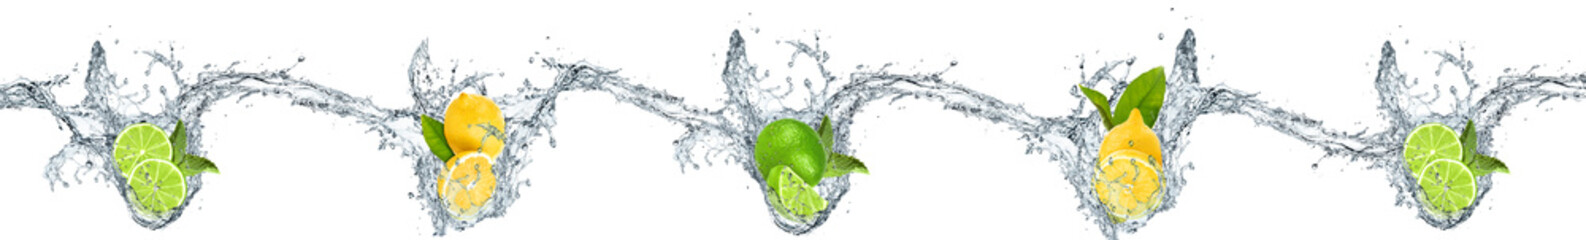 Lemons and oranges dropped into water